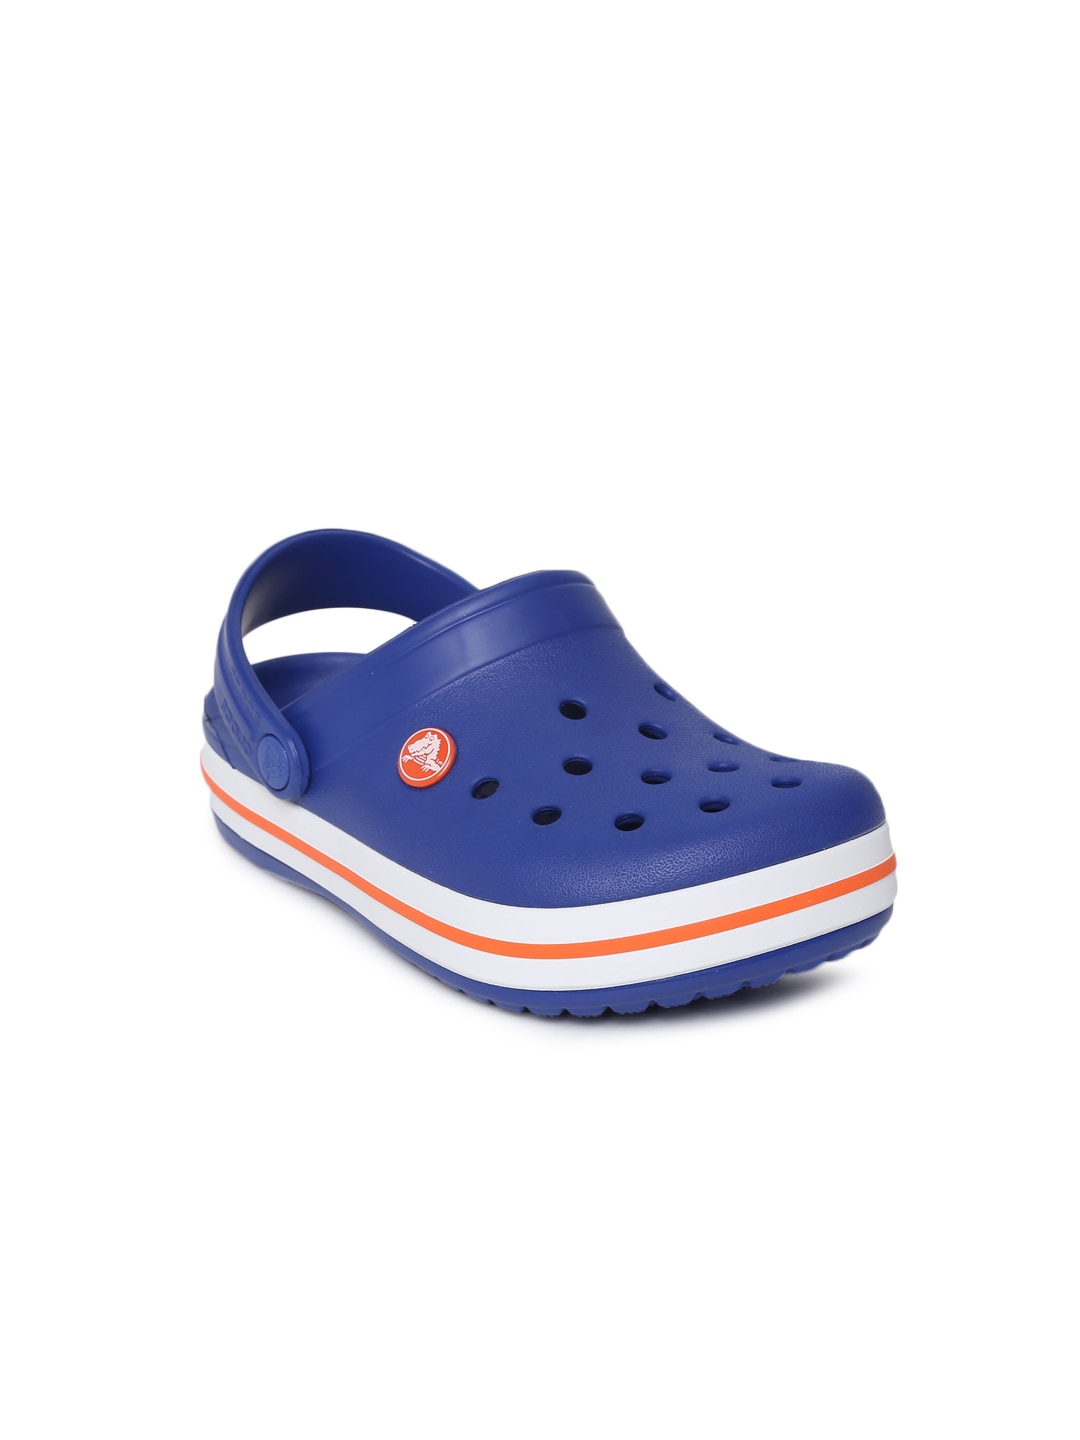 Crocs Unisex Blue Solid Crocband Clogs image